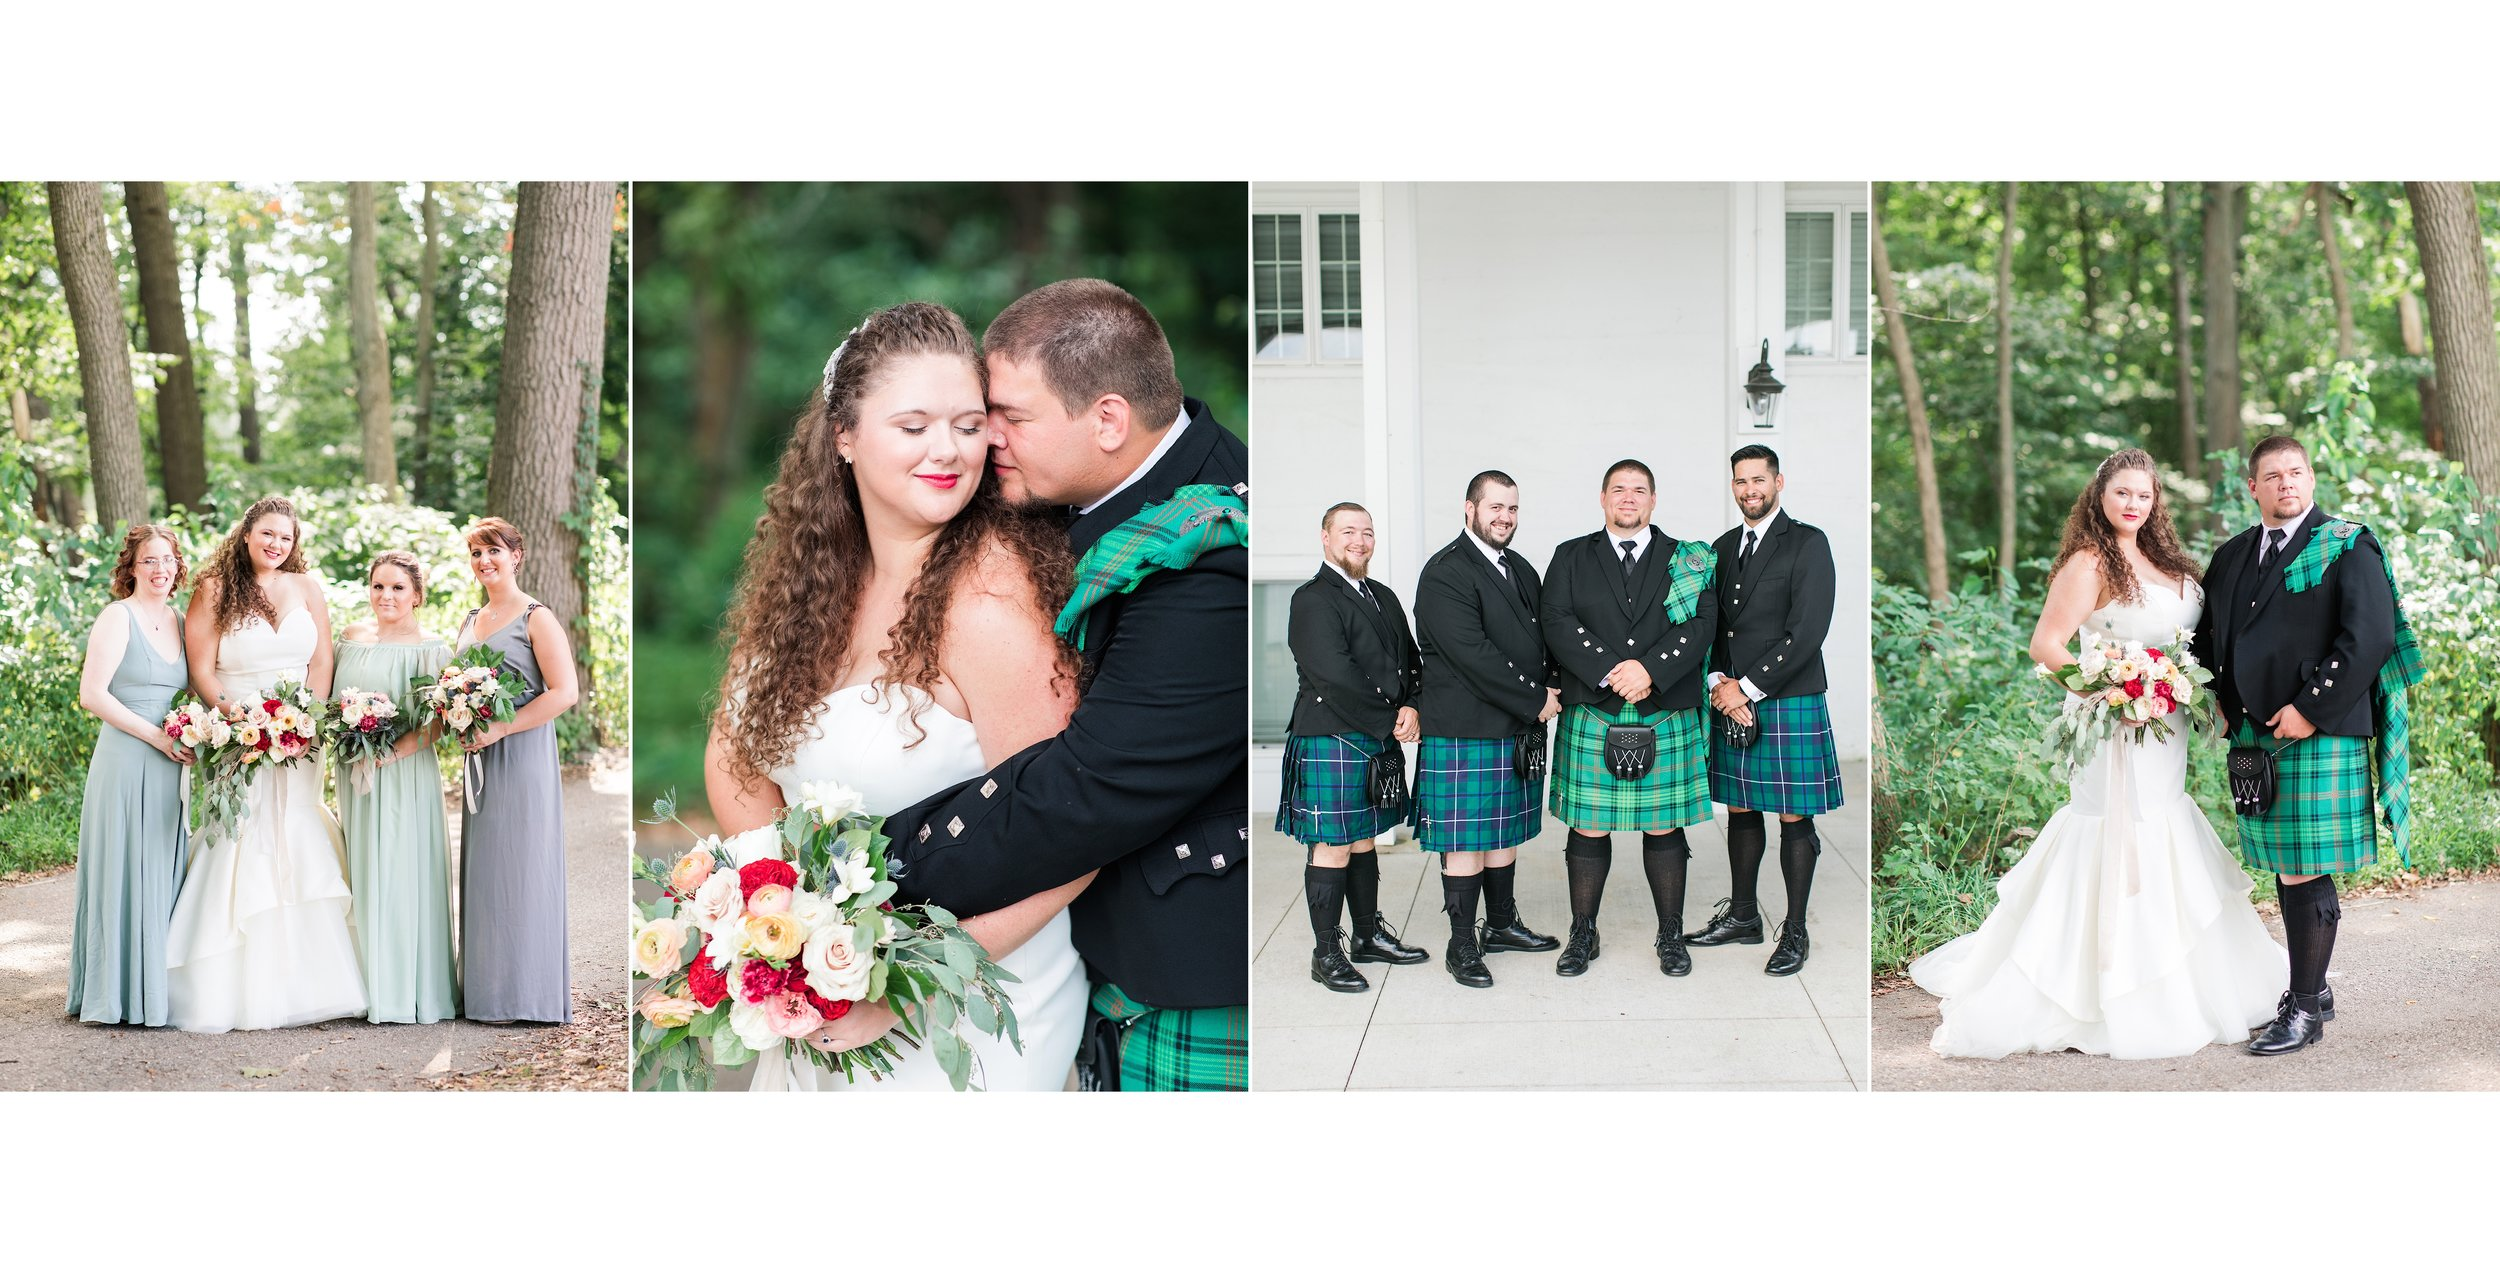 Our_Wedding_Album_12x12_-_30_pages_13.jpg